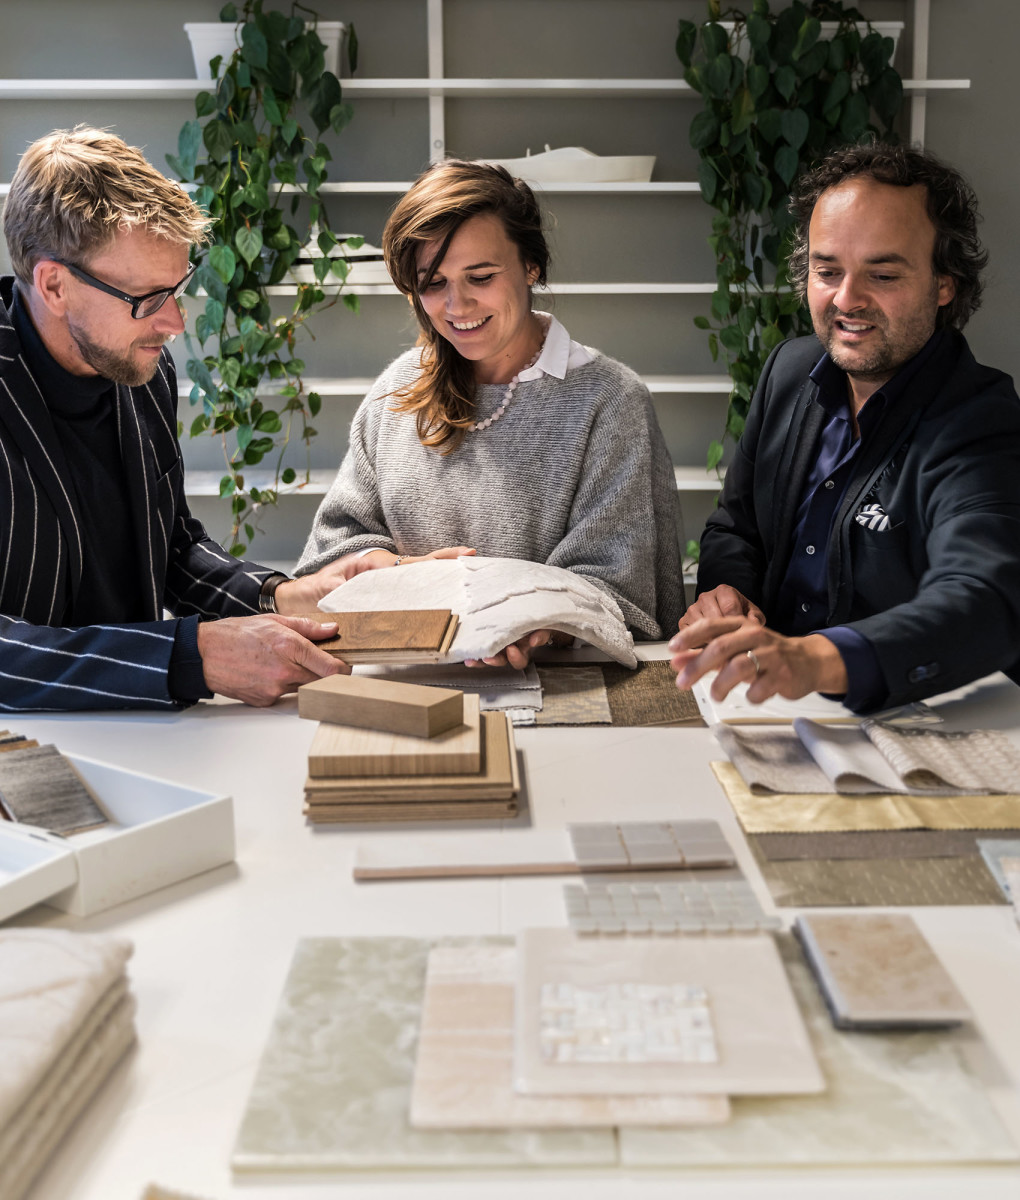 Bart Bouwhuis (left) and Marnix Hoekstra (right), the two creative directors of Vripack, discuss materials for the interior.